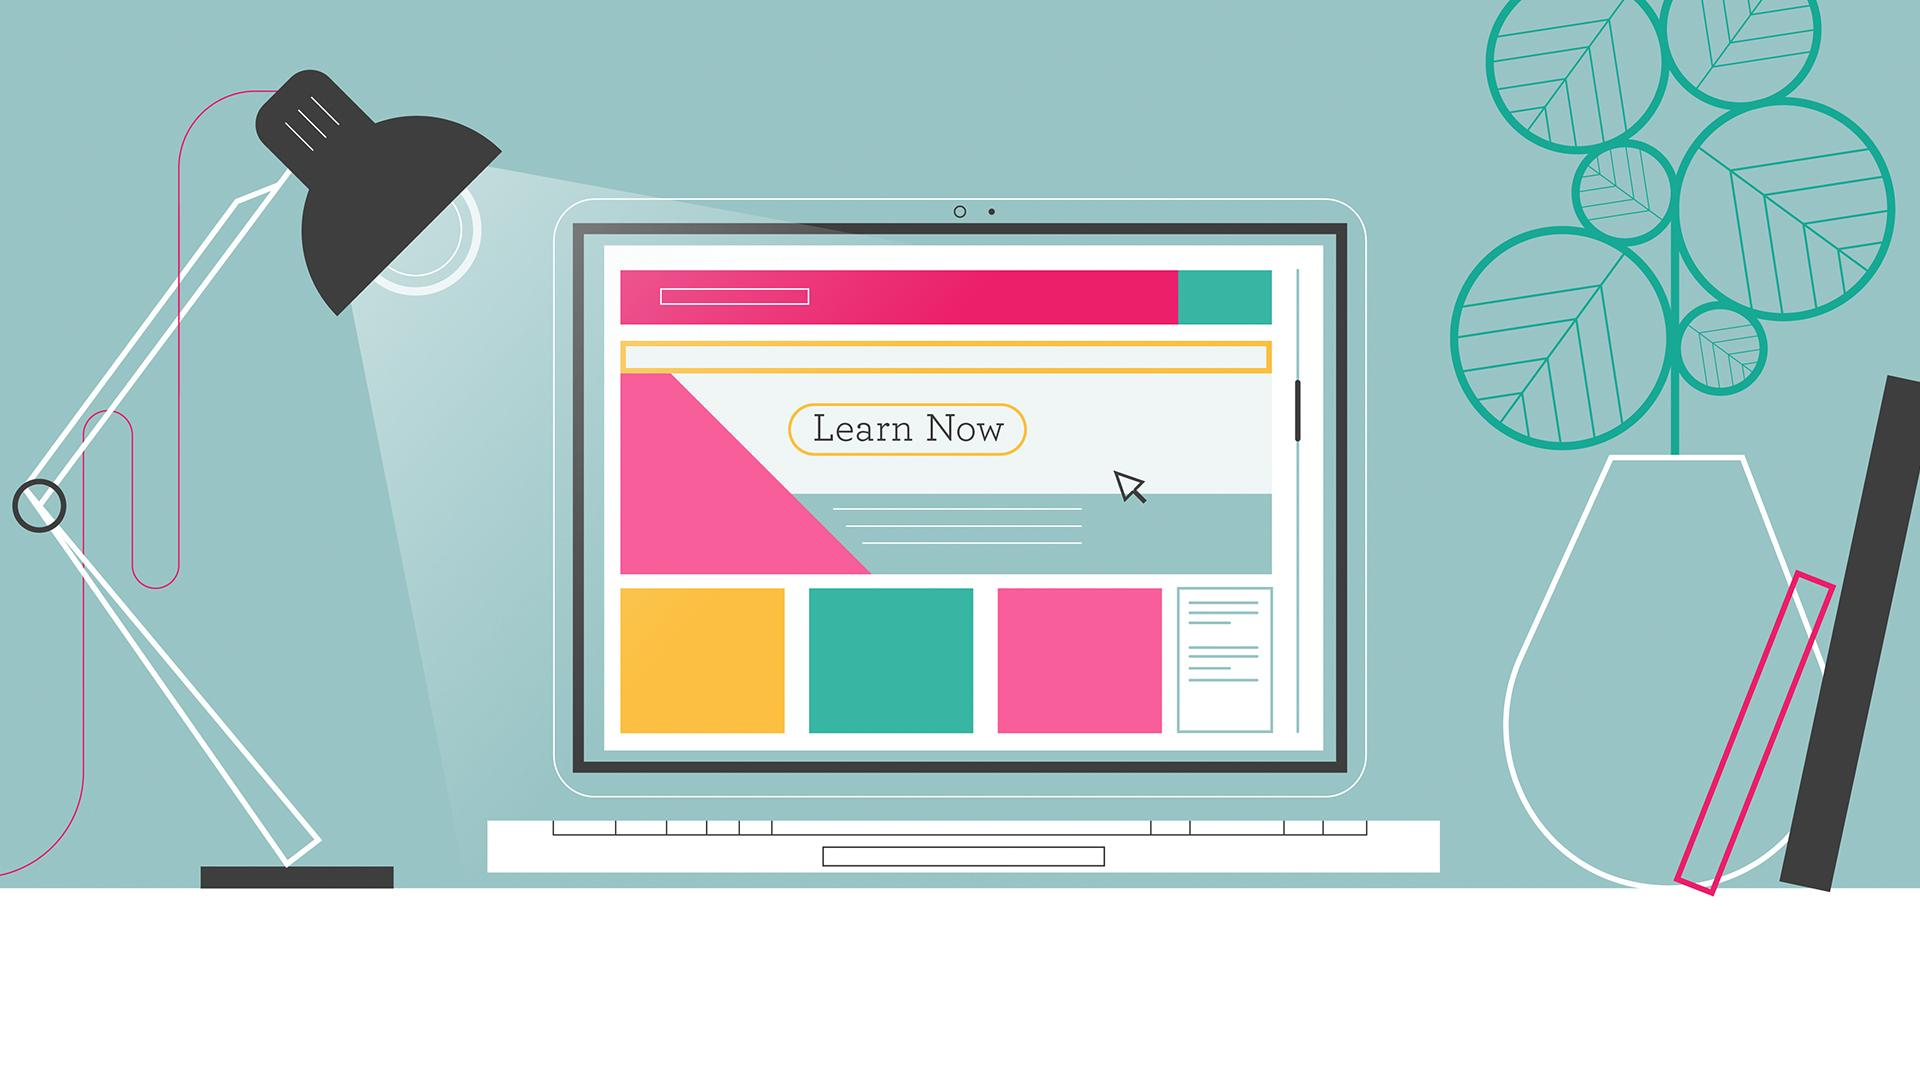 Open Study College animation for their website and billboards